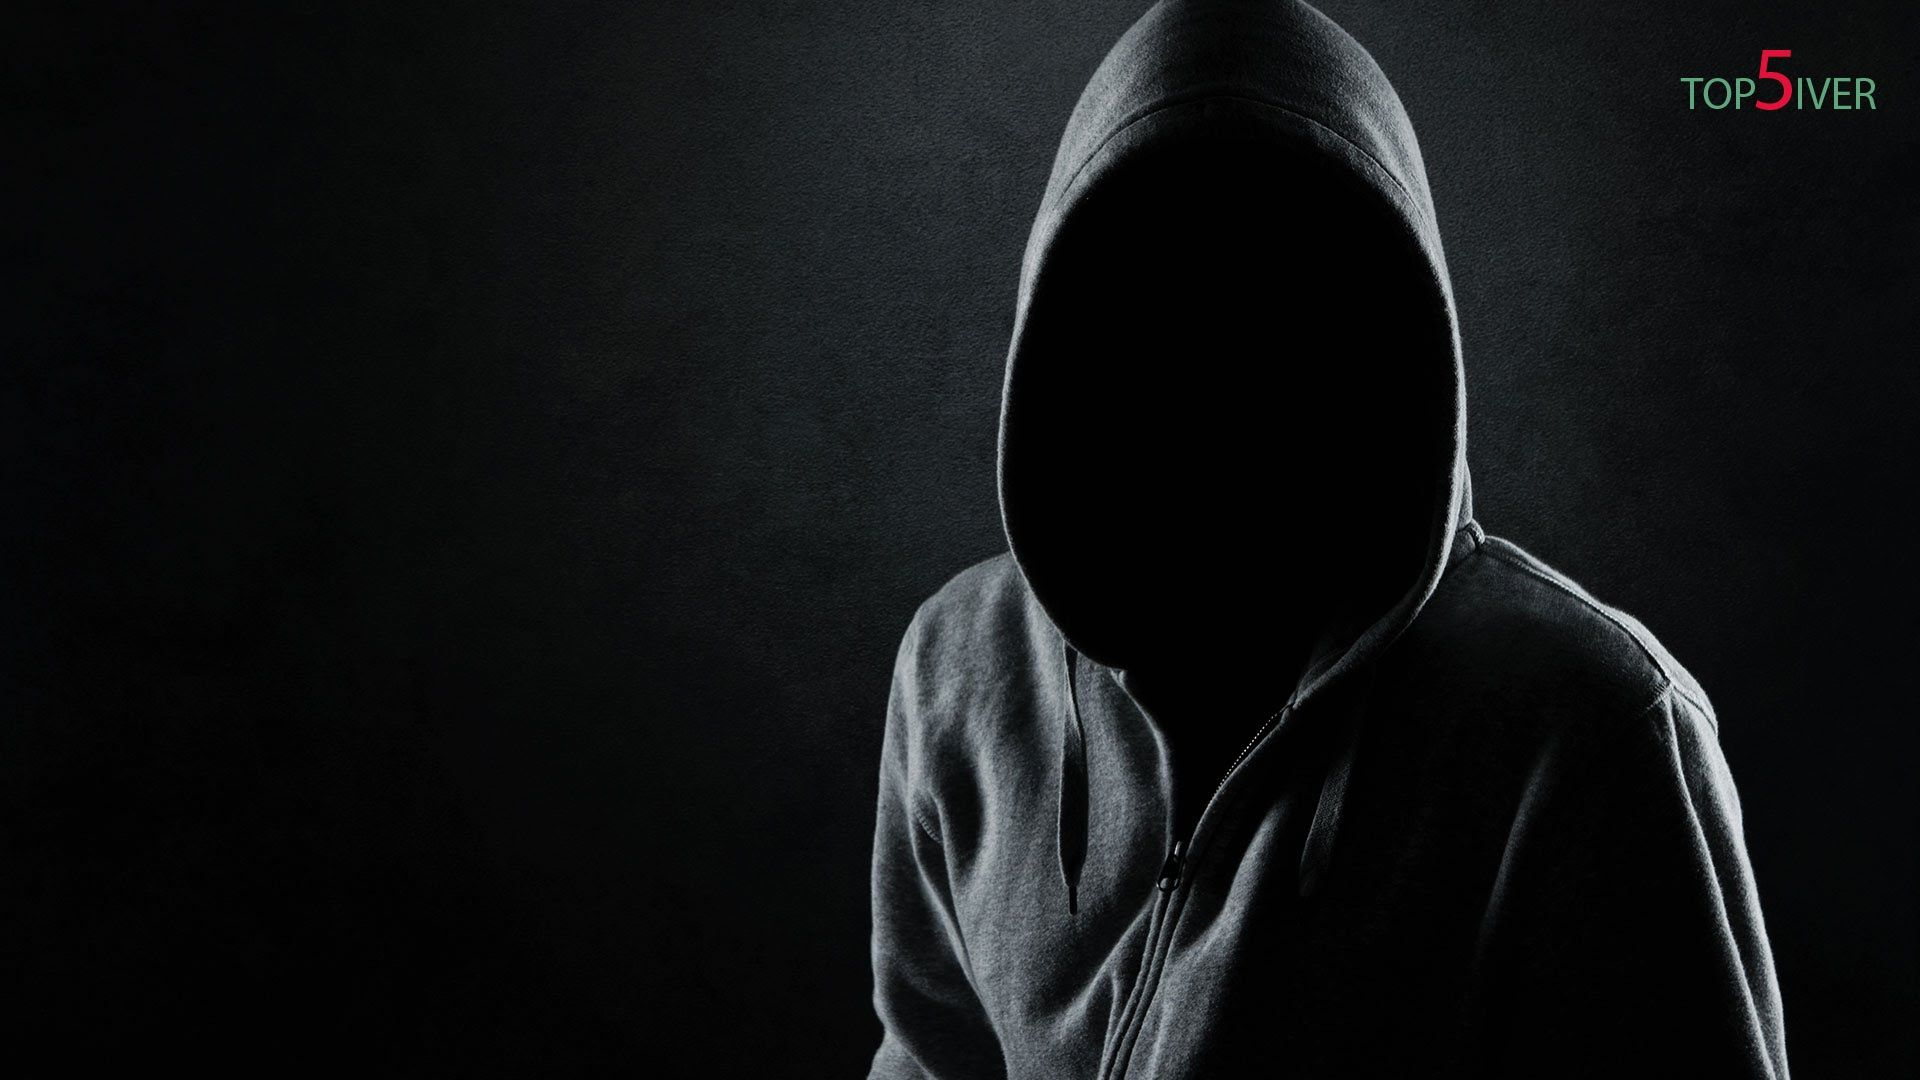 Top 5 Unsolved Cases That Involved Mysterious Phone Calls